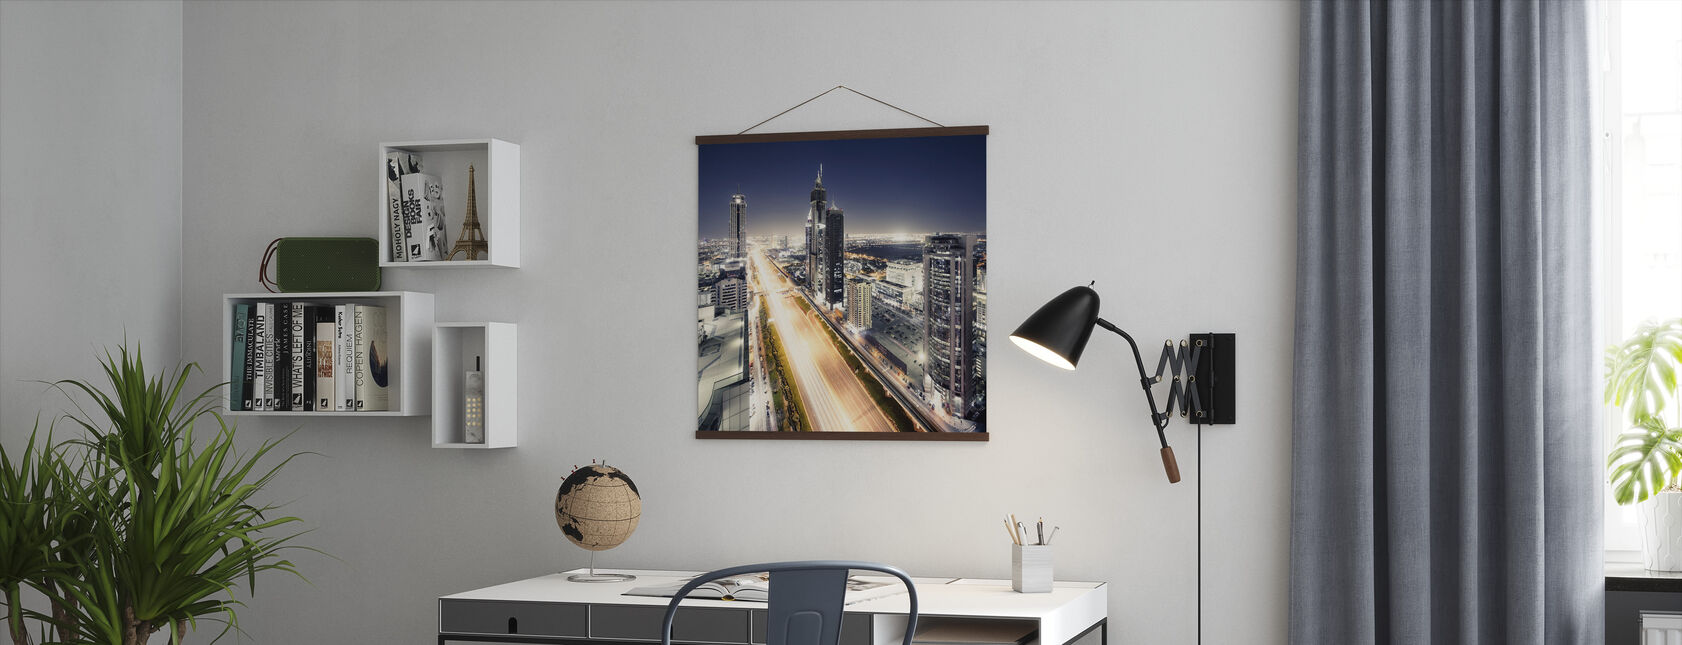 Dubai by Night - Poster - Office